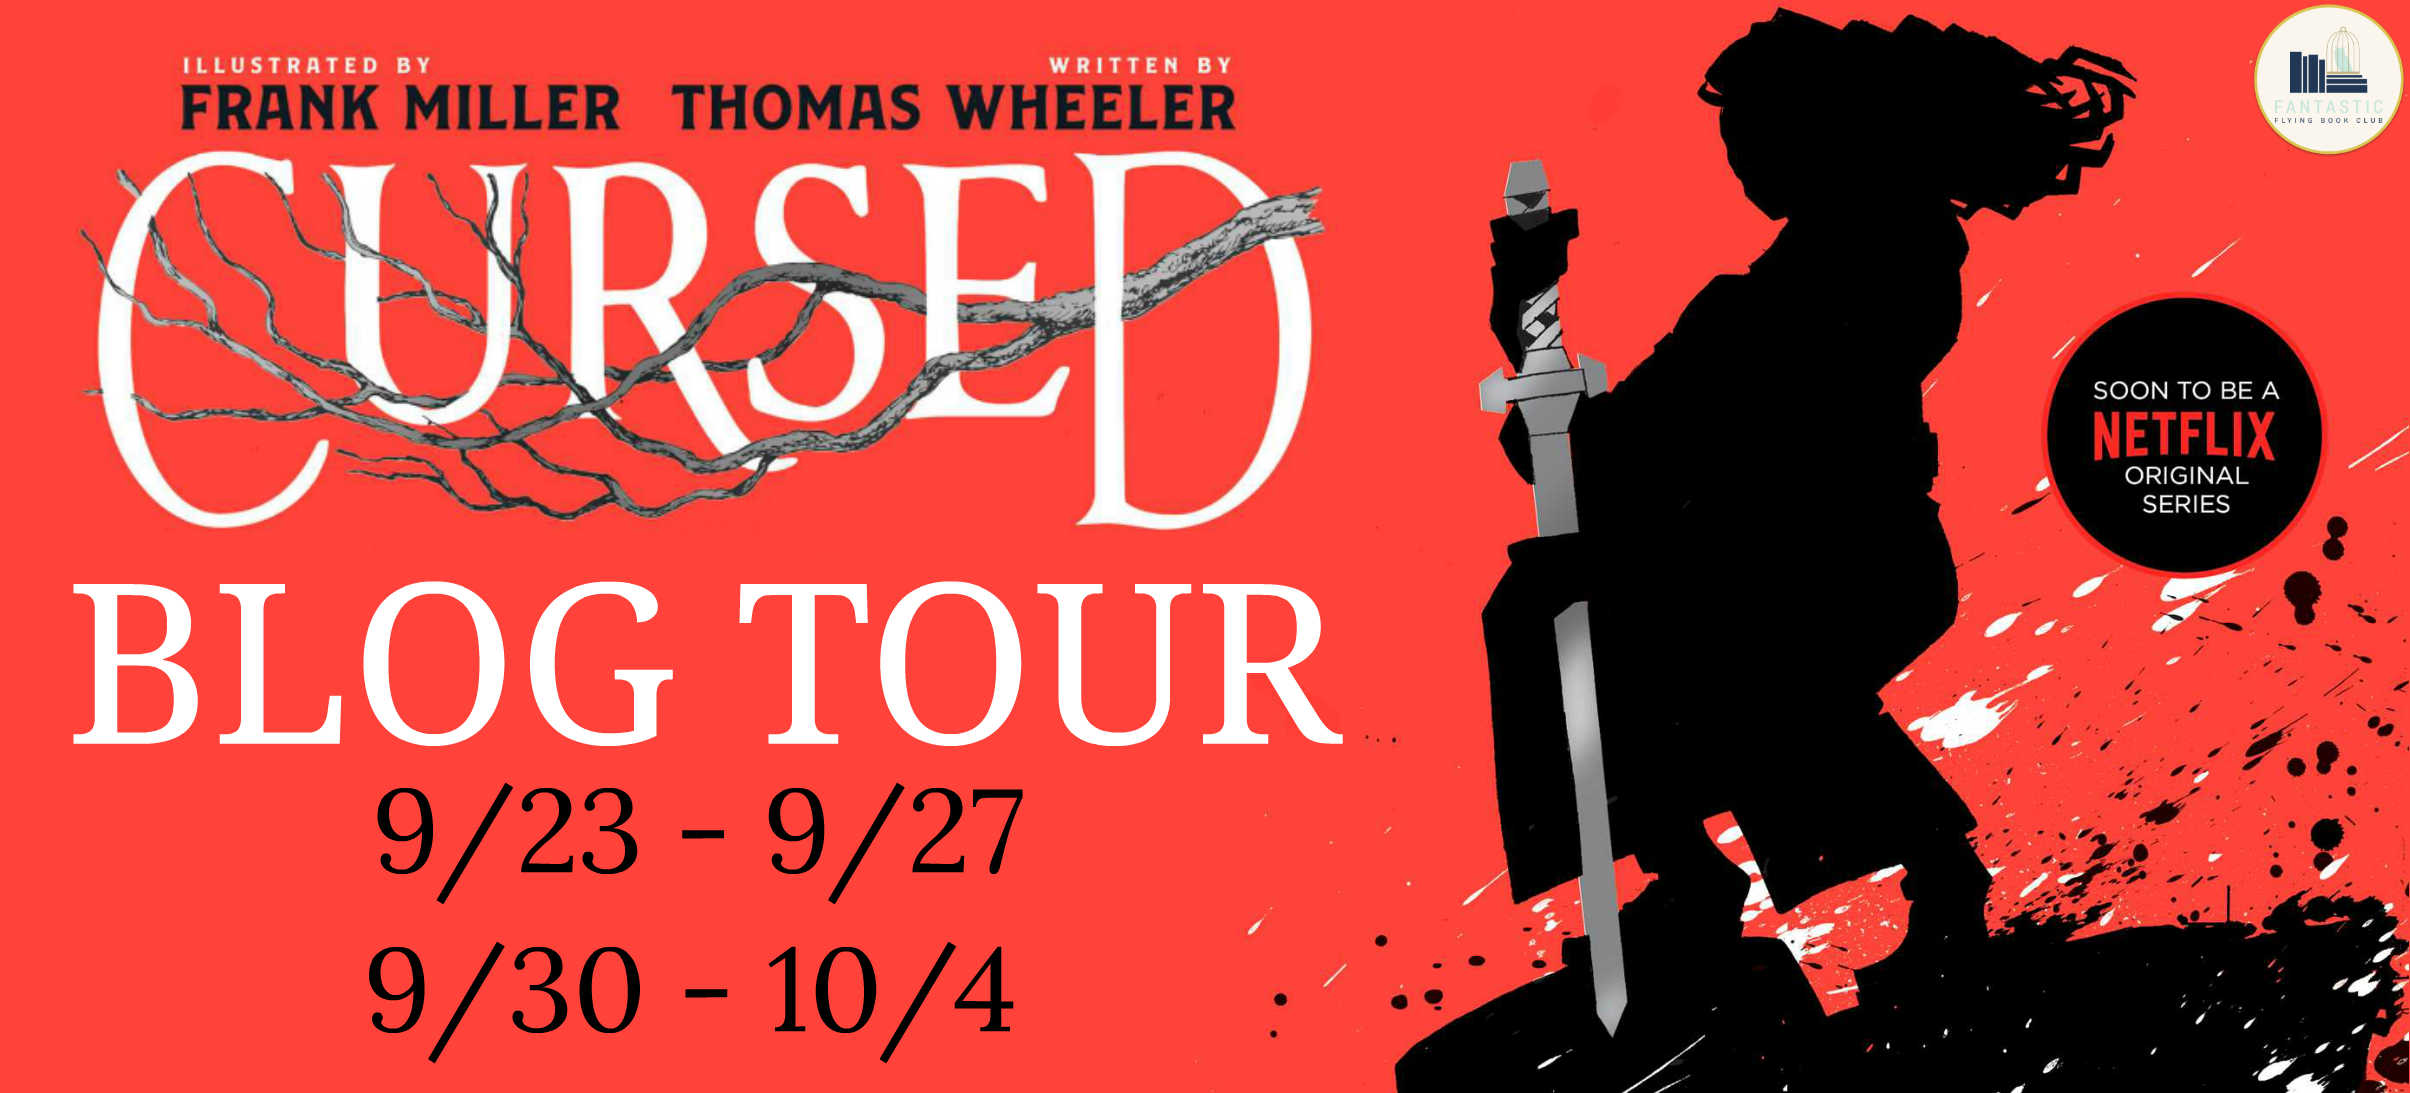 Blog Tour: Cursed by Frank Miller and Tom Wheeler (Creative Post + Giveaway!!!)